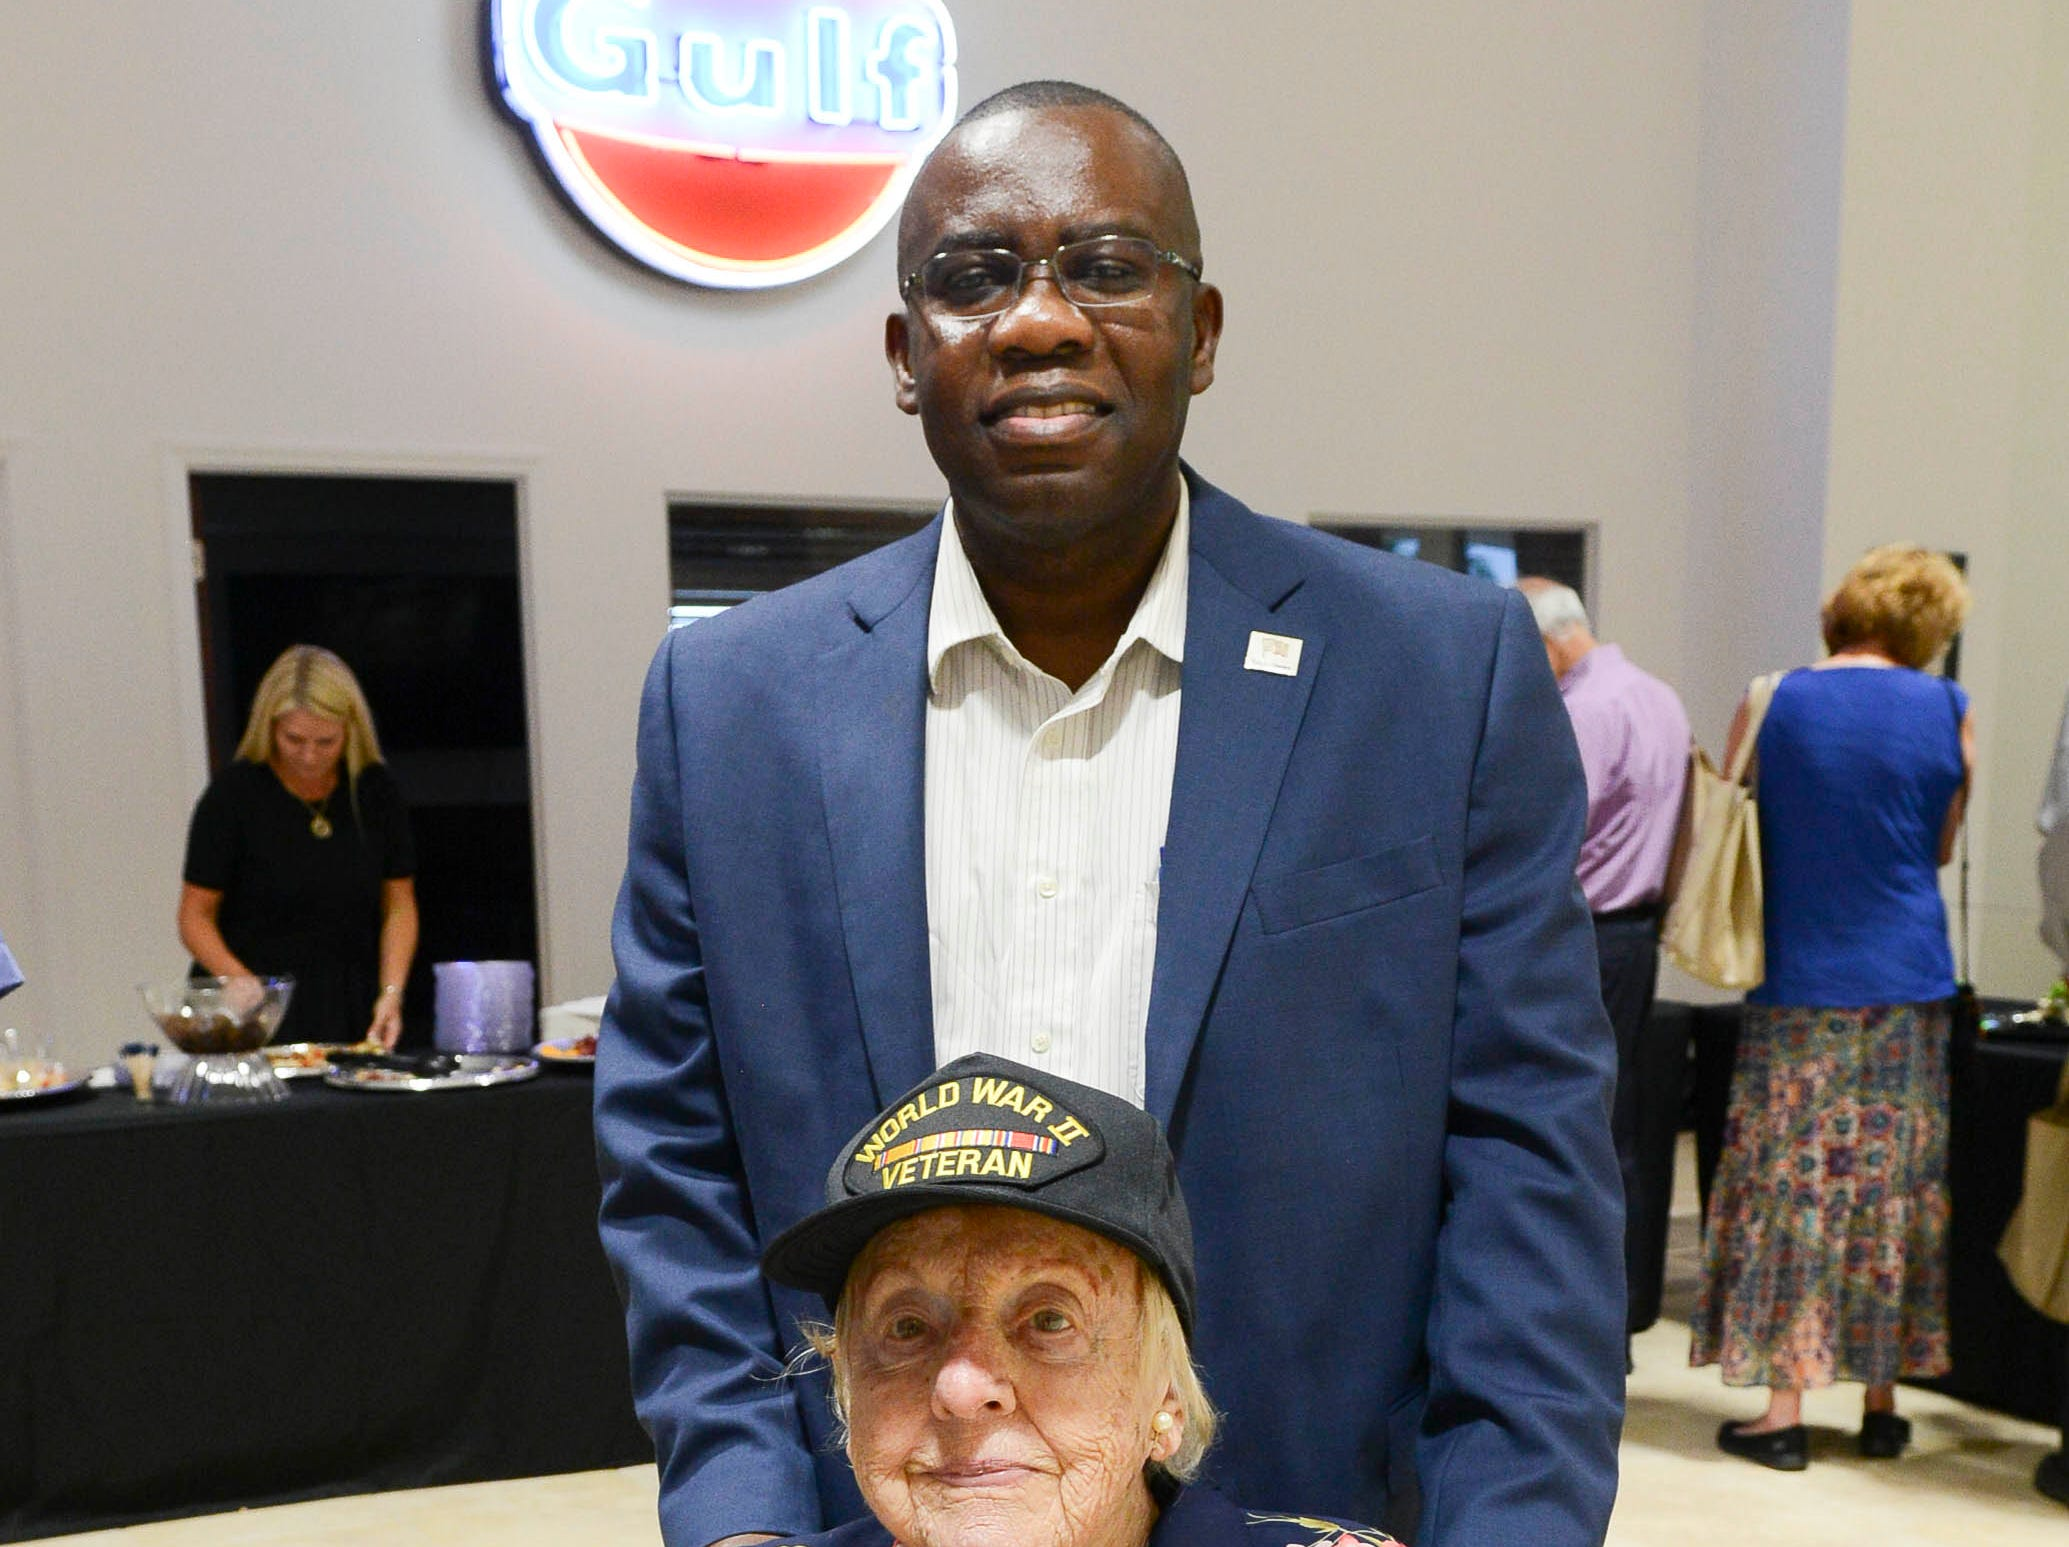 Bobbie Schwartz and Chad Fertil get their picture taken during the Stars and Stripes fundraiser at American Muscle Car Museum. The event was a fundraiser for Space Coast Honor Flight.